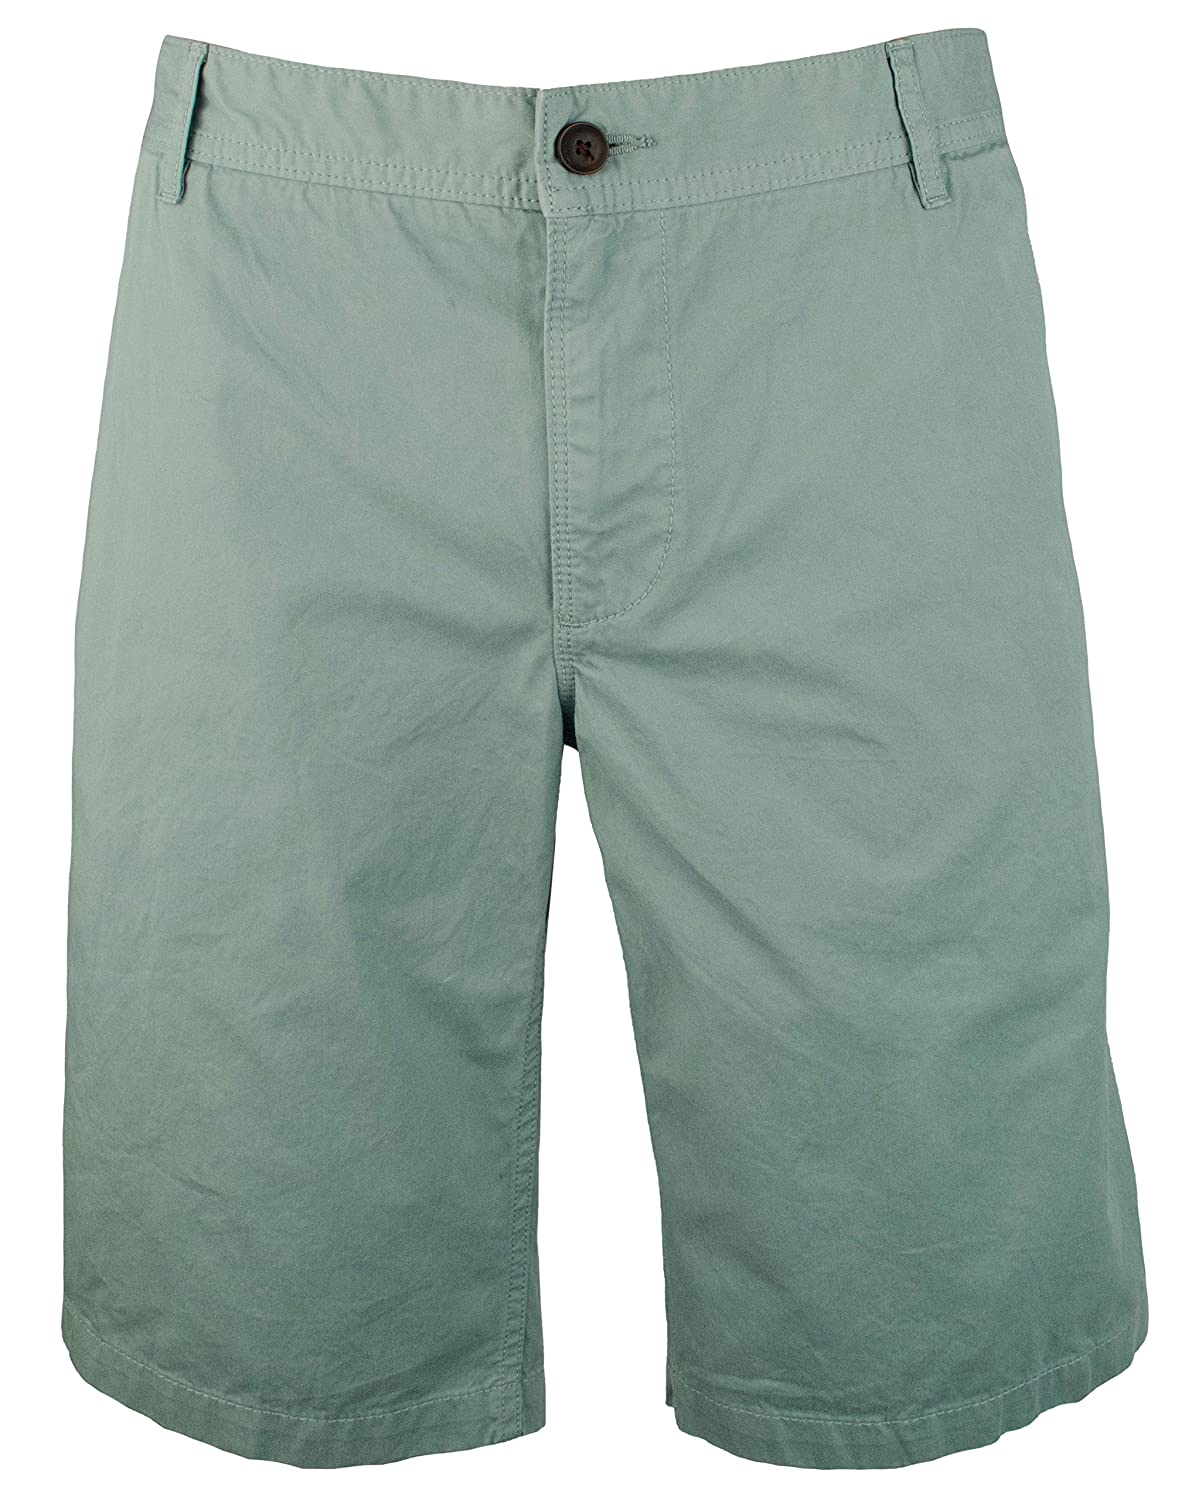 020b7617 Amazon.com: Hugo Boss Boss Men's Orange Label Schino Shorts (38, Sho): Boss  Hugo Boss: Clothing